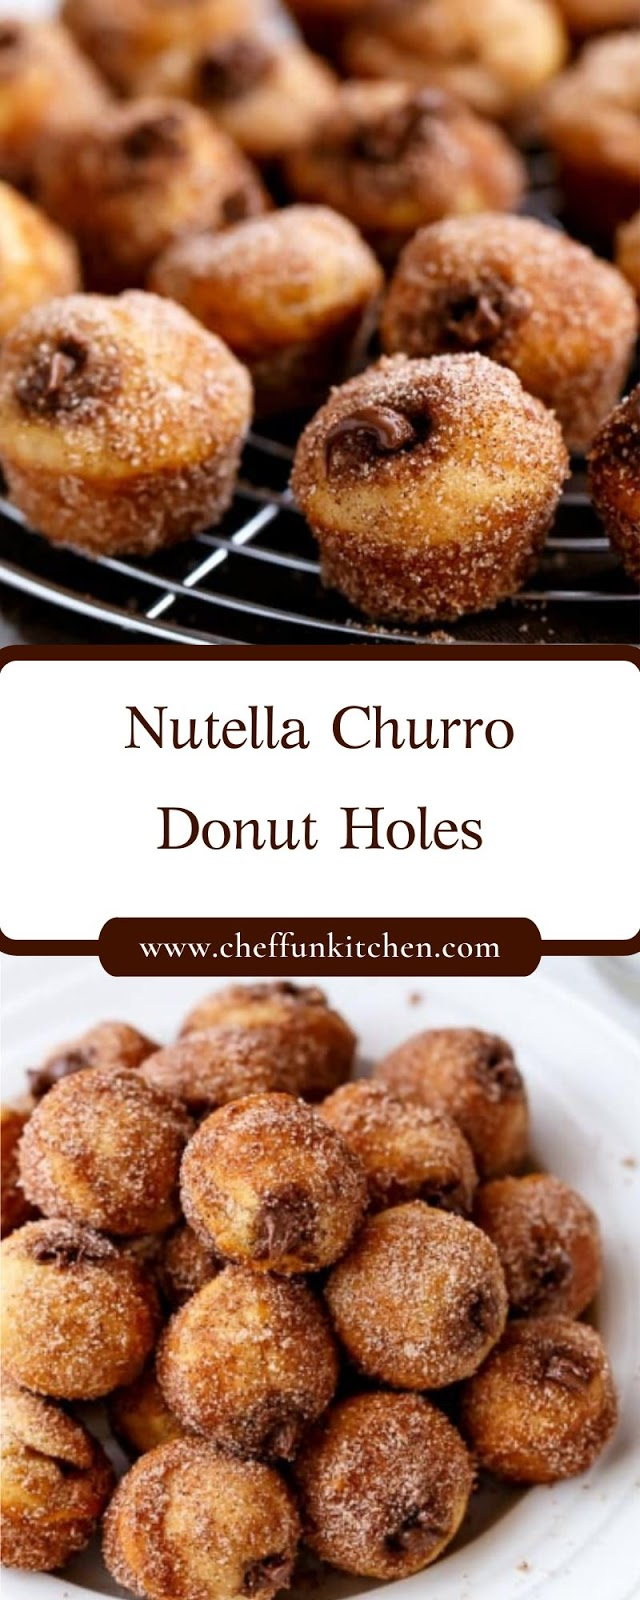 Nutella Churro Donut Holes